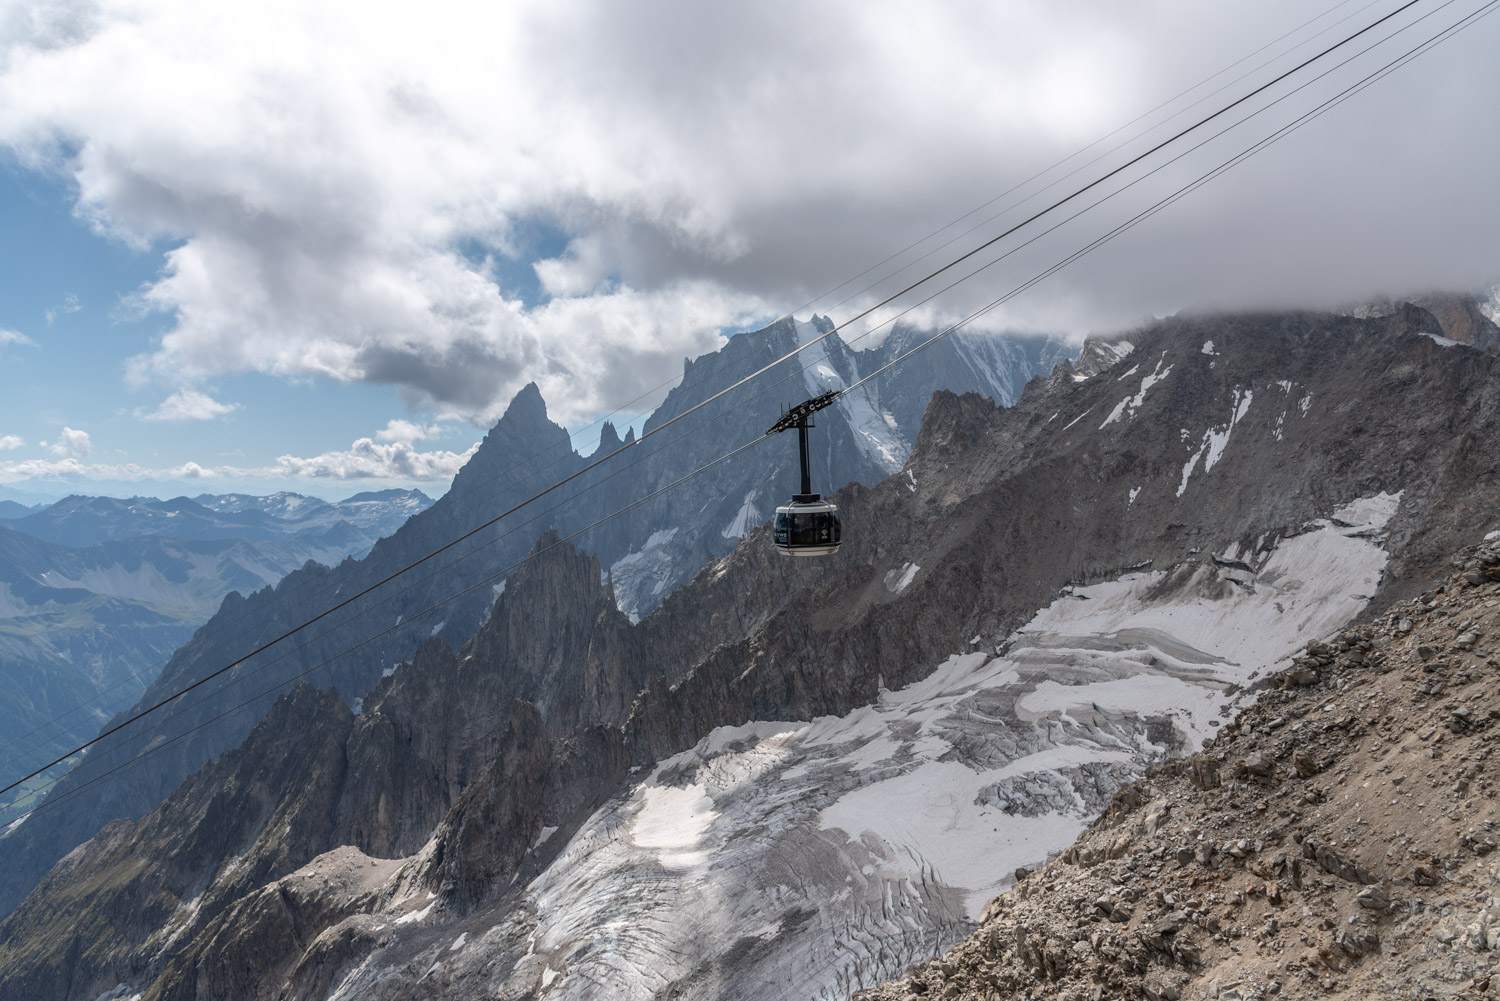 SKYWAY Monte Bianco, compleanno ad alta quota